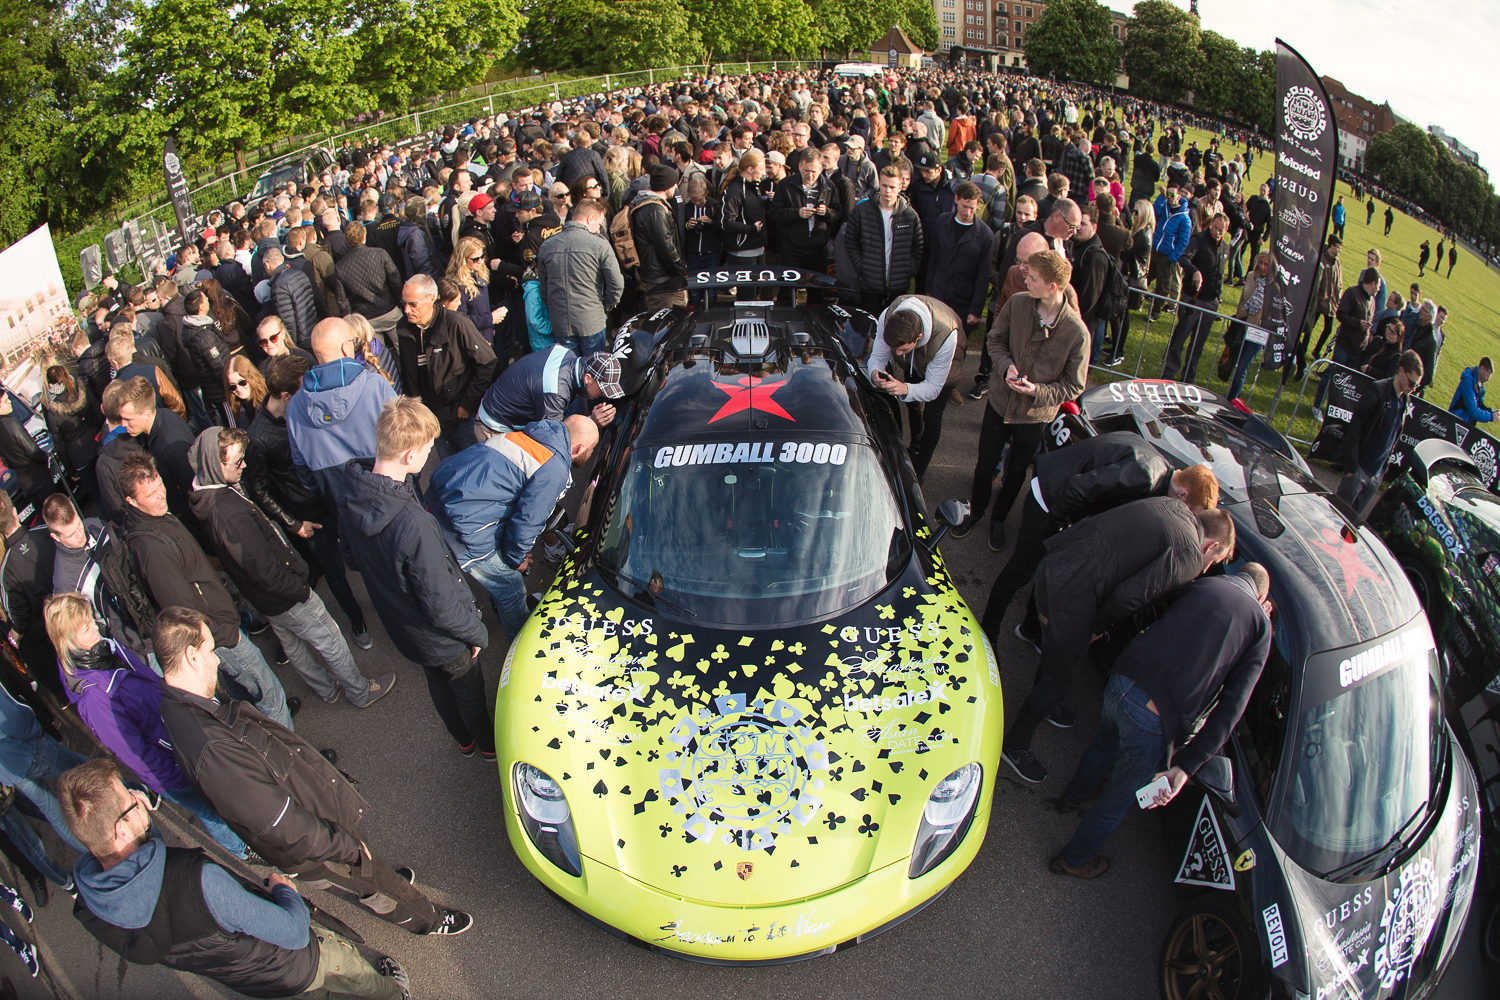 SMoores_15-05-25_Gumball 3000 Day 2_0411-Edit.jpg